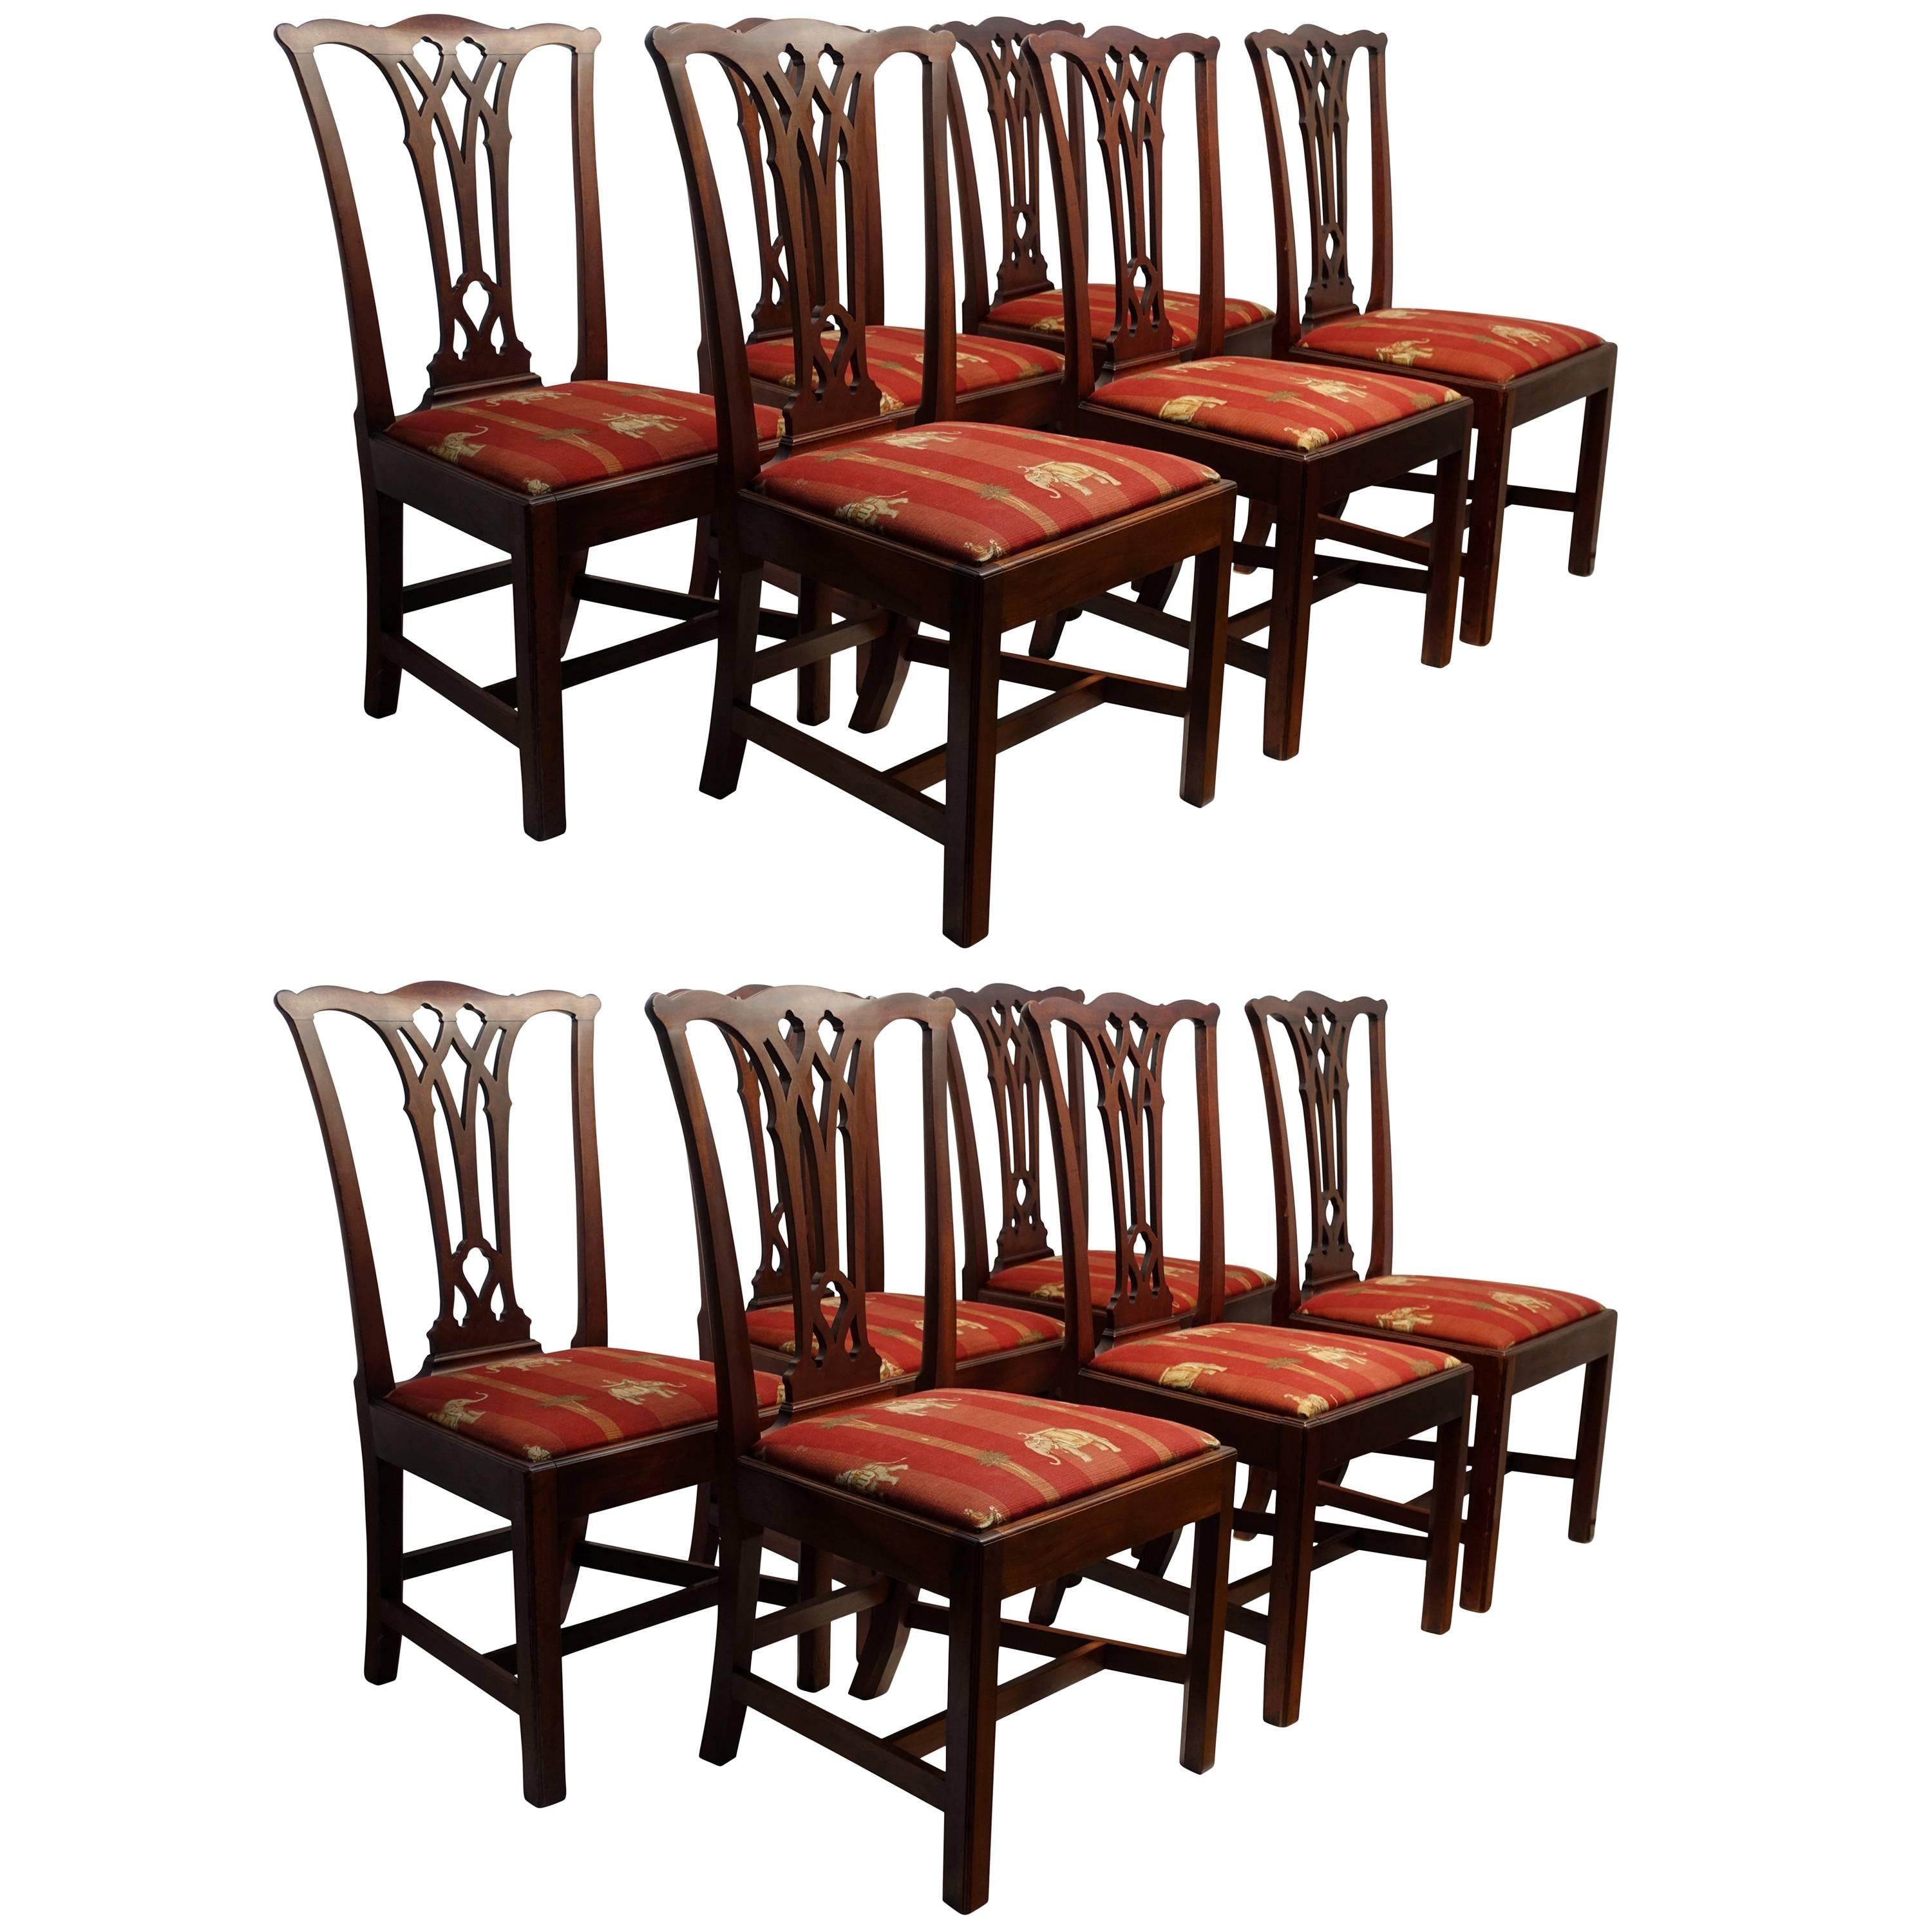 Set Of 12 English Mahogany Chippendale Dining Chairs